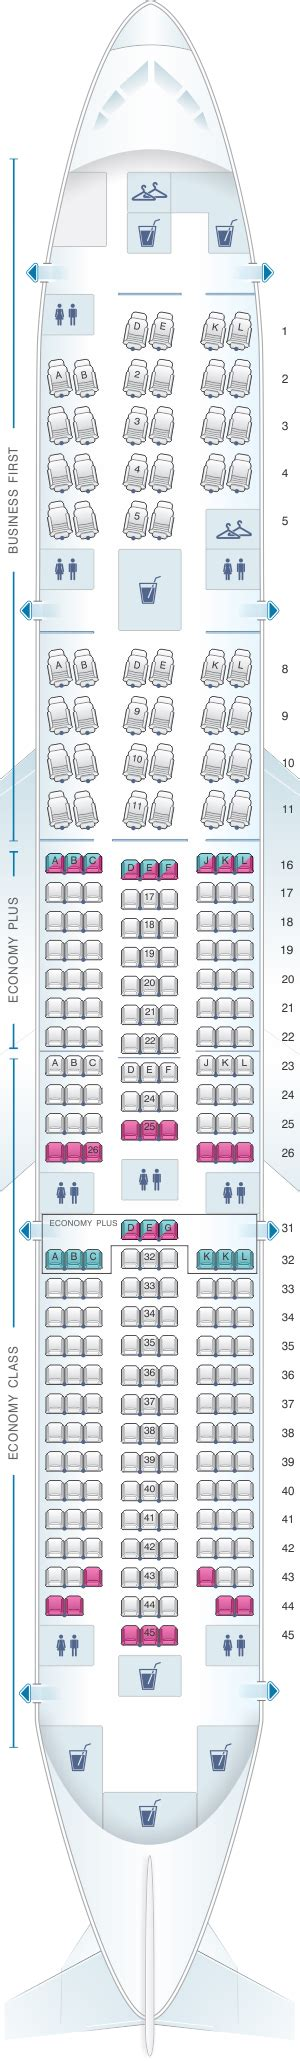 united 777 200 seat map mapa de asientos united airlines boeing b777 200 777